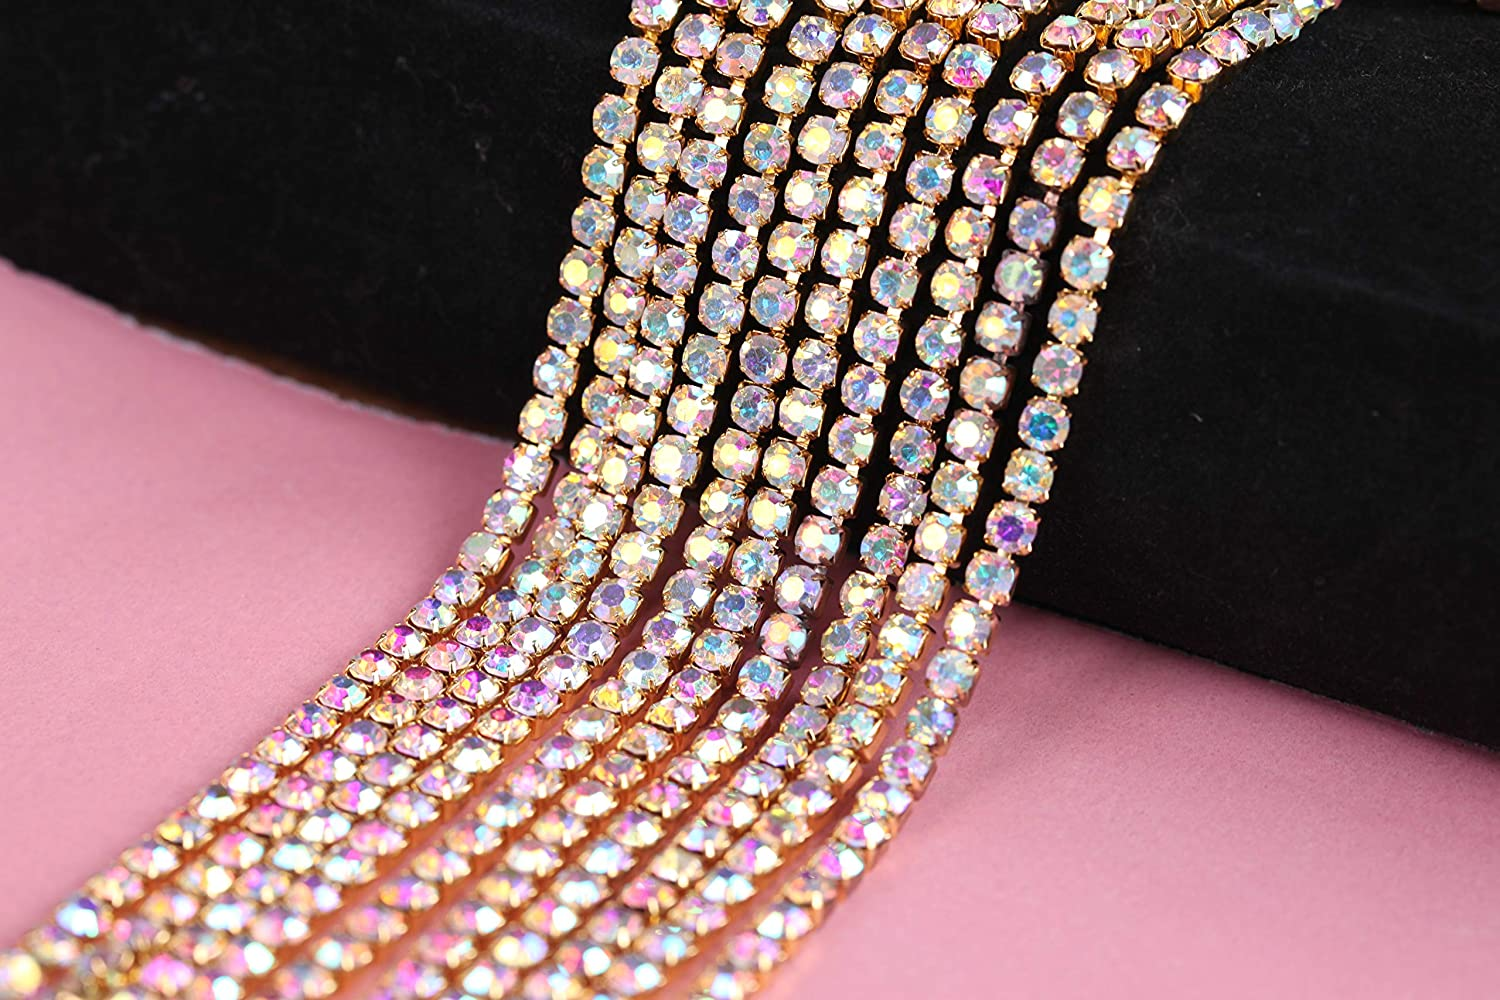 ss16-4mm, Crystal-Gold Bottom BLINGINBOX Rhinestones Chain 10 Yards//R 4 Sizes Crystal//Crystal AB Glass Sew On Rhinestones Cup Chain With Silver//Gold Button Sew On Trim